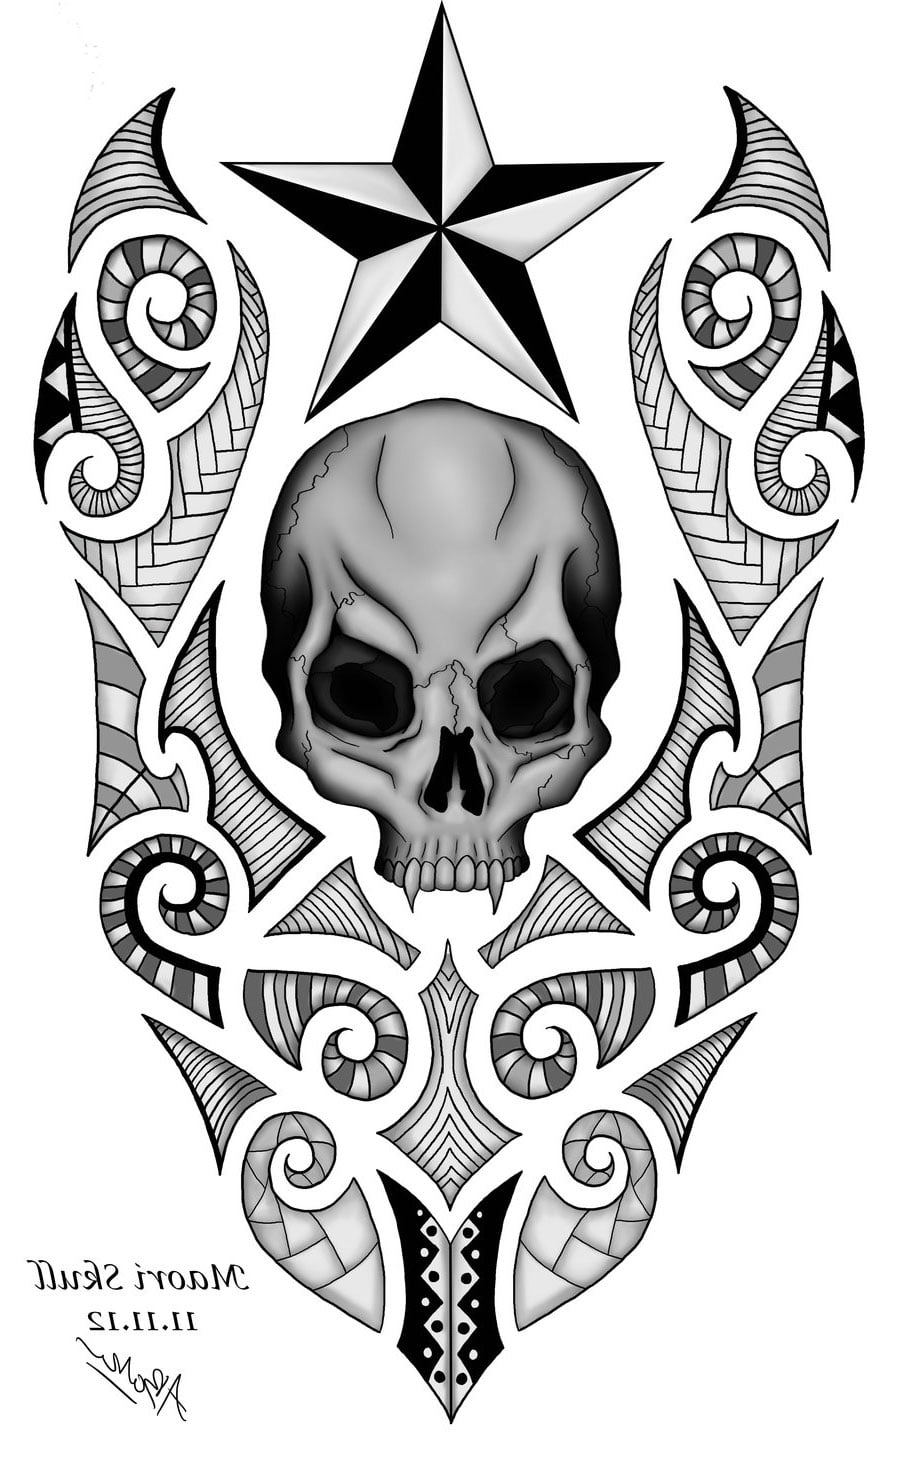 free tattoo designs of skulls cool tattoos bonbaden. Black Bedroom Furniture Sets. Home Design Ideas